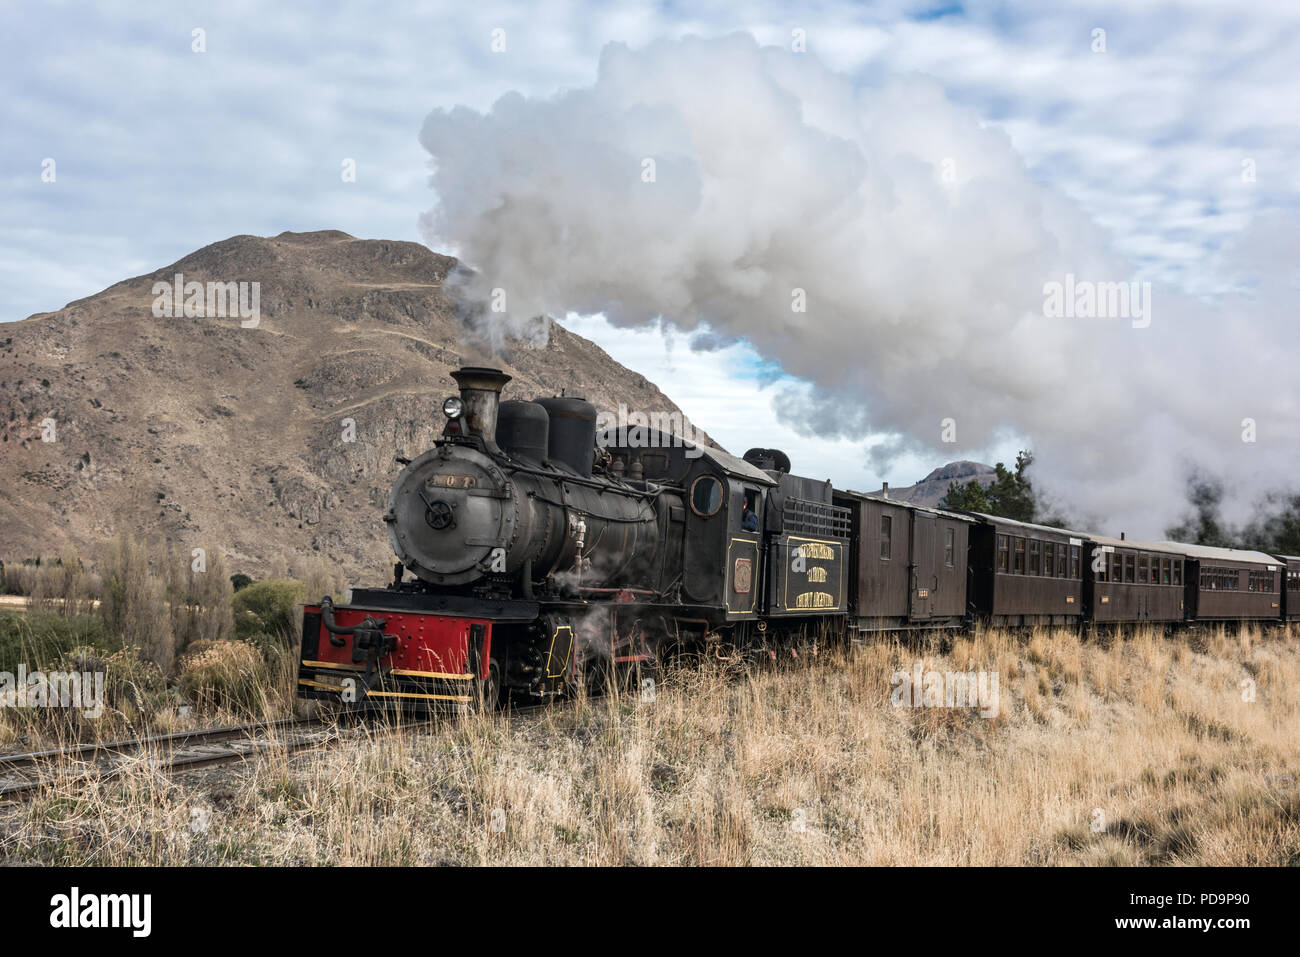 Esquel, Argentina - April 28, 2018: La Trochita (official name: Viejo Expreso Patagonico), in English known as the Old Patagonian Express, is a 750 mm - Stock Image